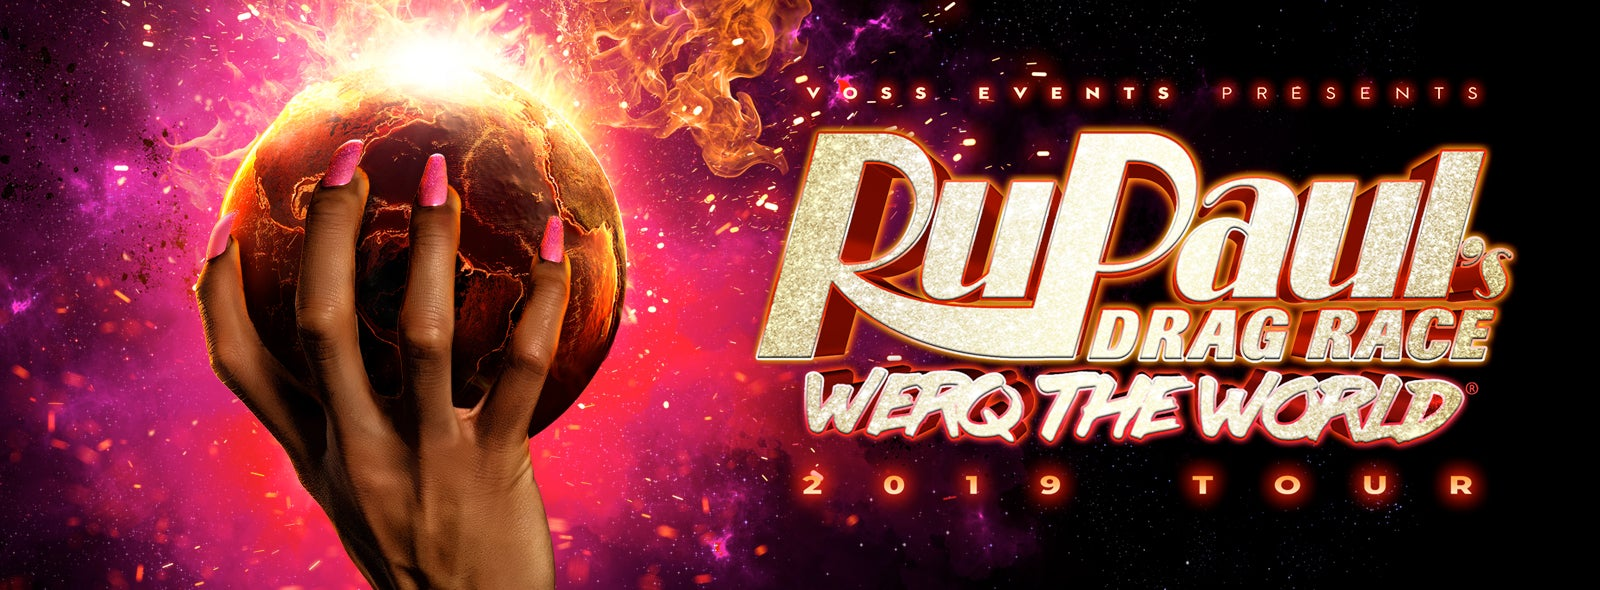 RuPaul's Werq the World_1600x590.jpg